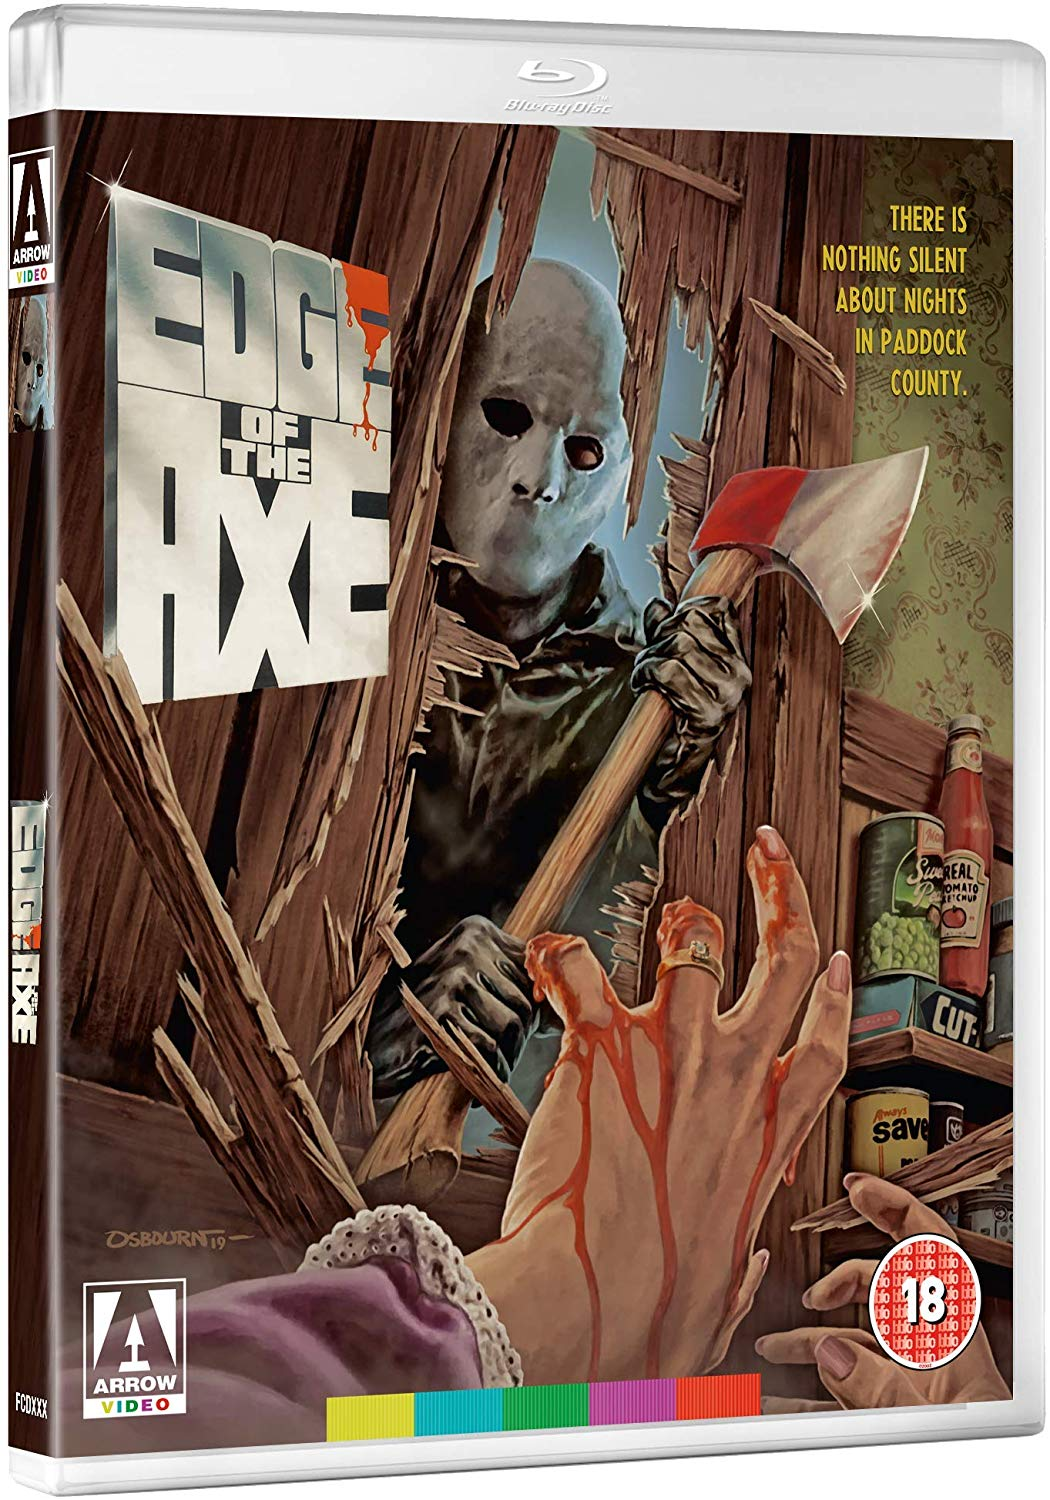 Arrow Video Edge of the Axe UK Blu-Ray